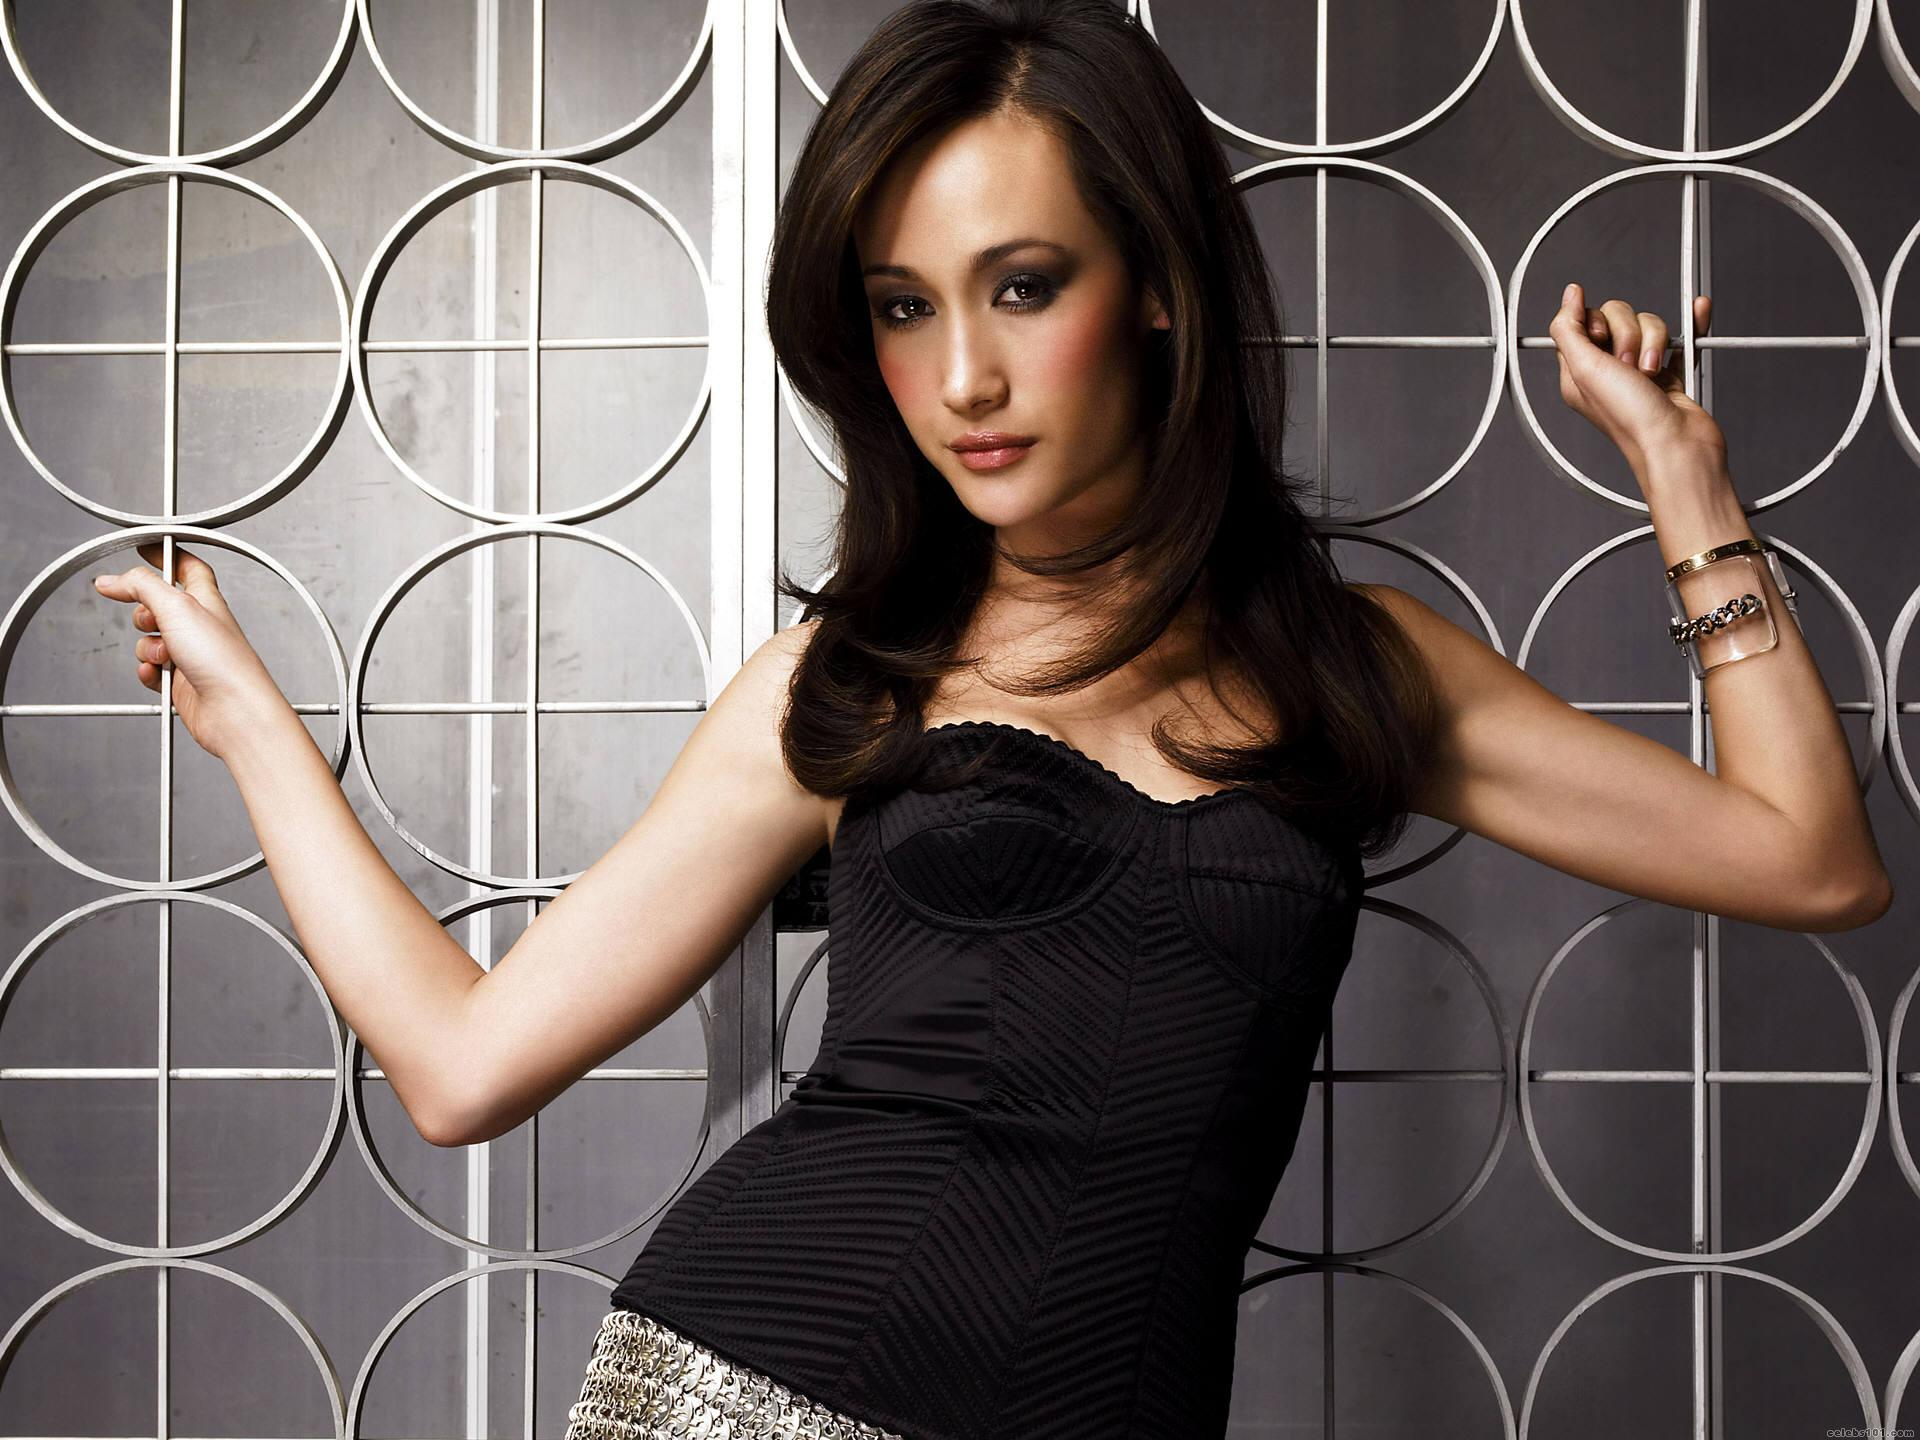 1920x1440 - Maggie Q Wallpapers 6